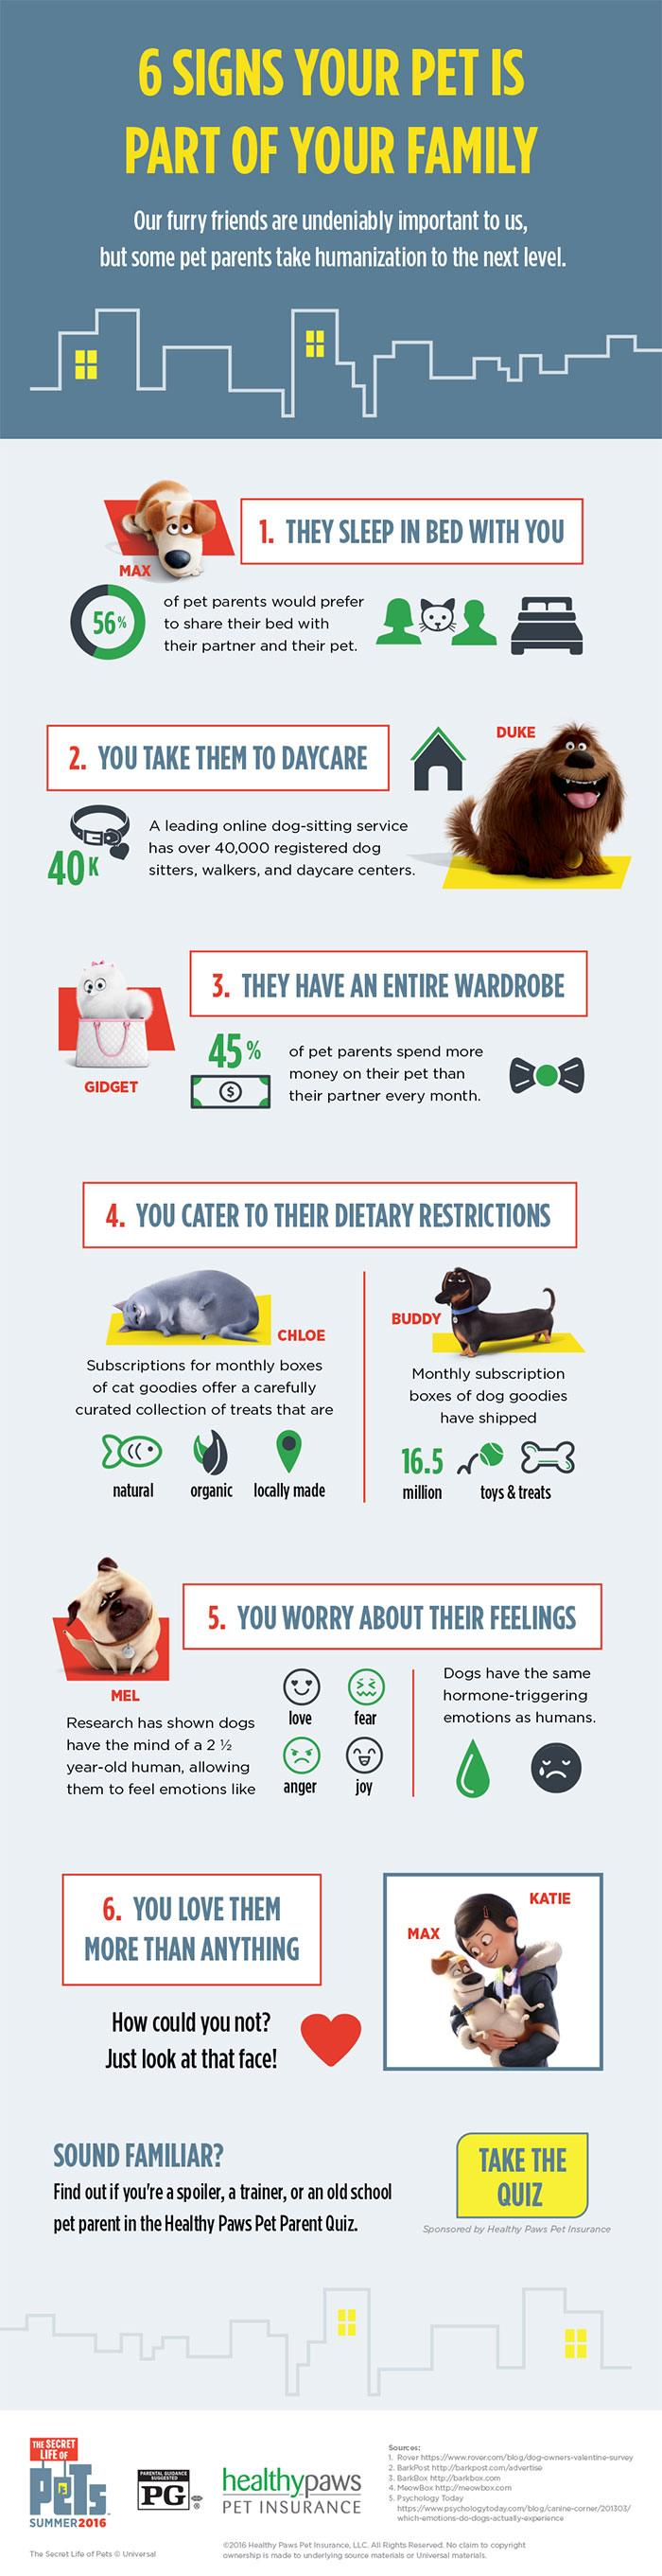 6-signs-your-pet-is-family-infographic